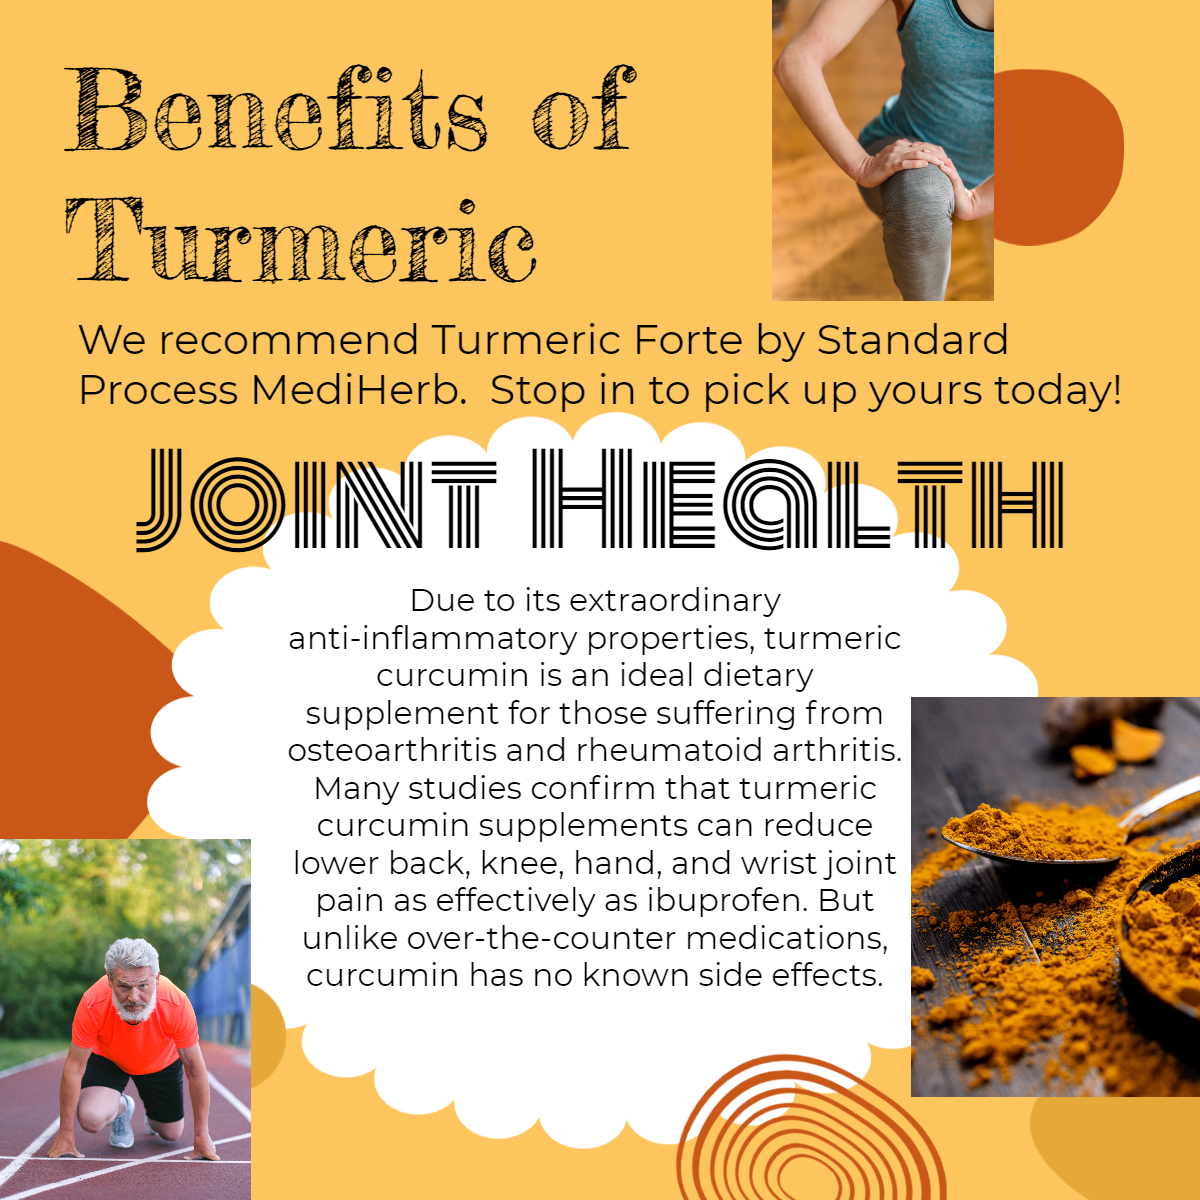 Turmeric for joint health